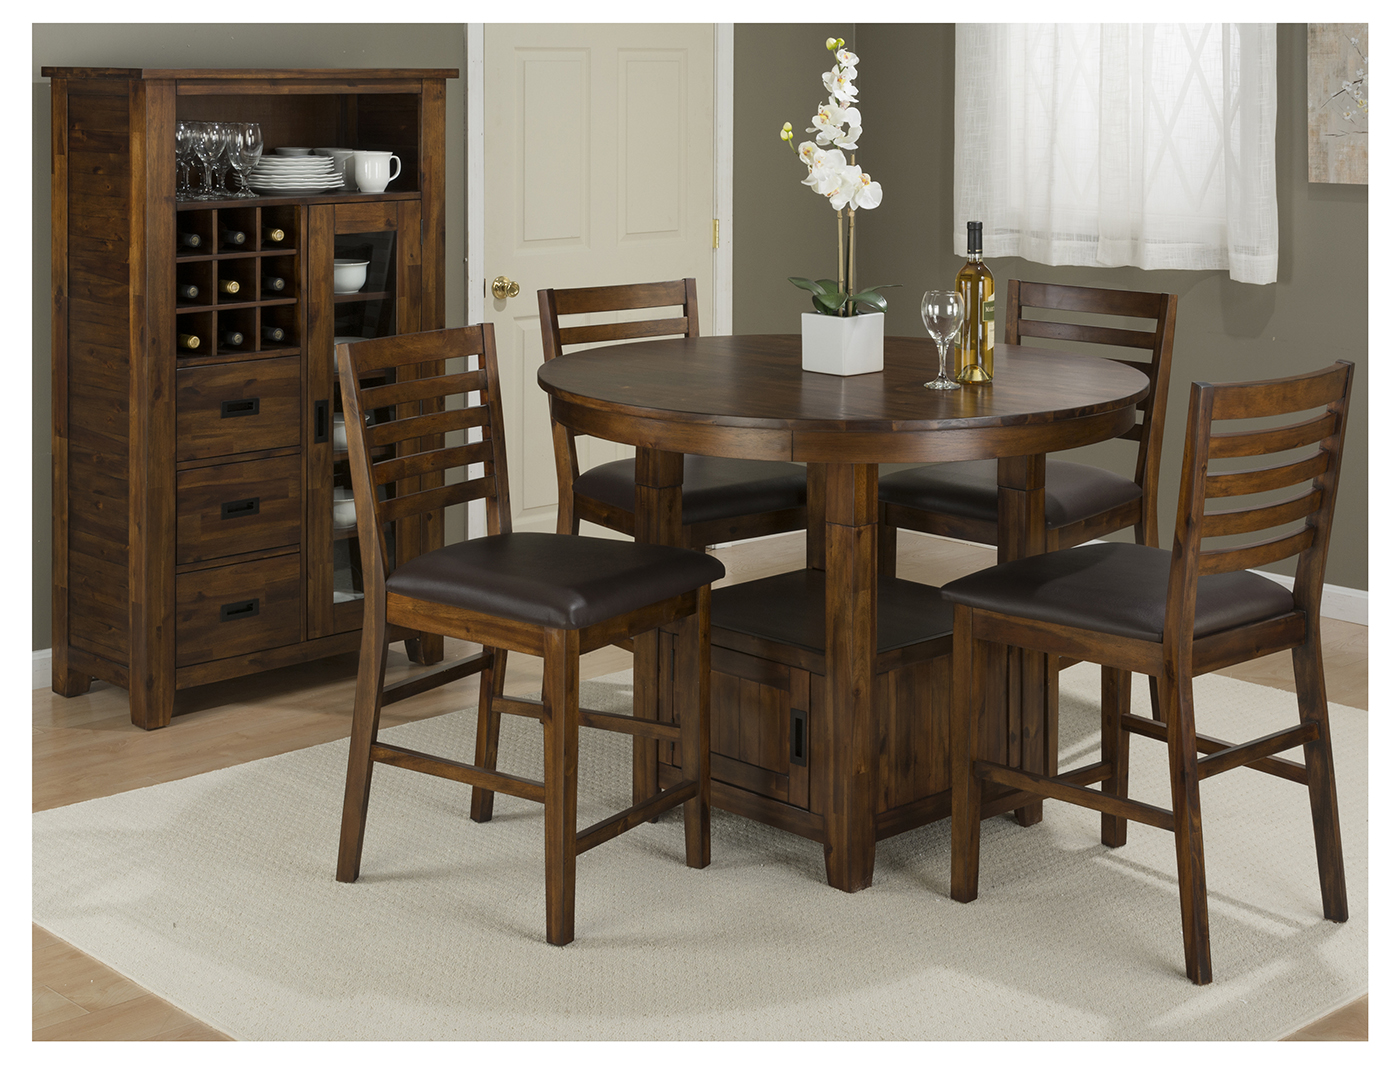 Coolidge Corner 5-pc. Counter Height Dining Set